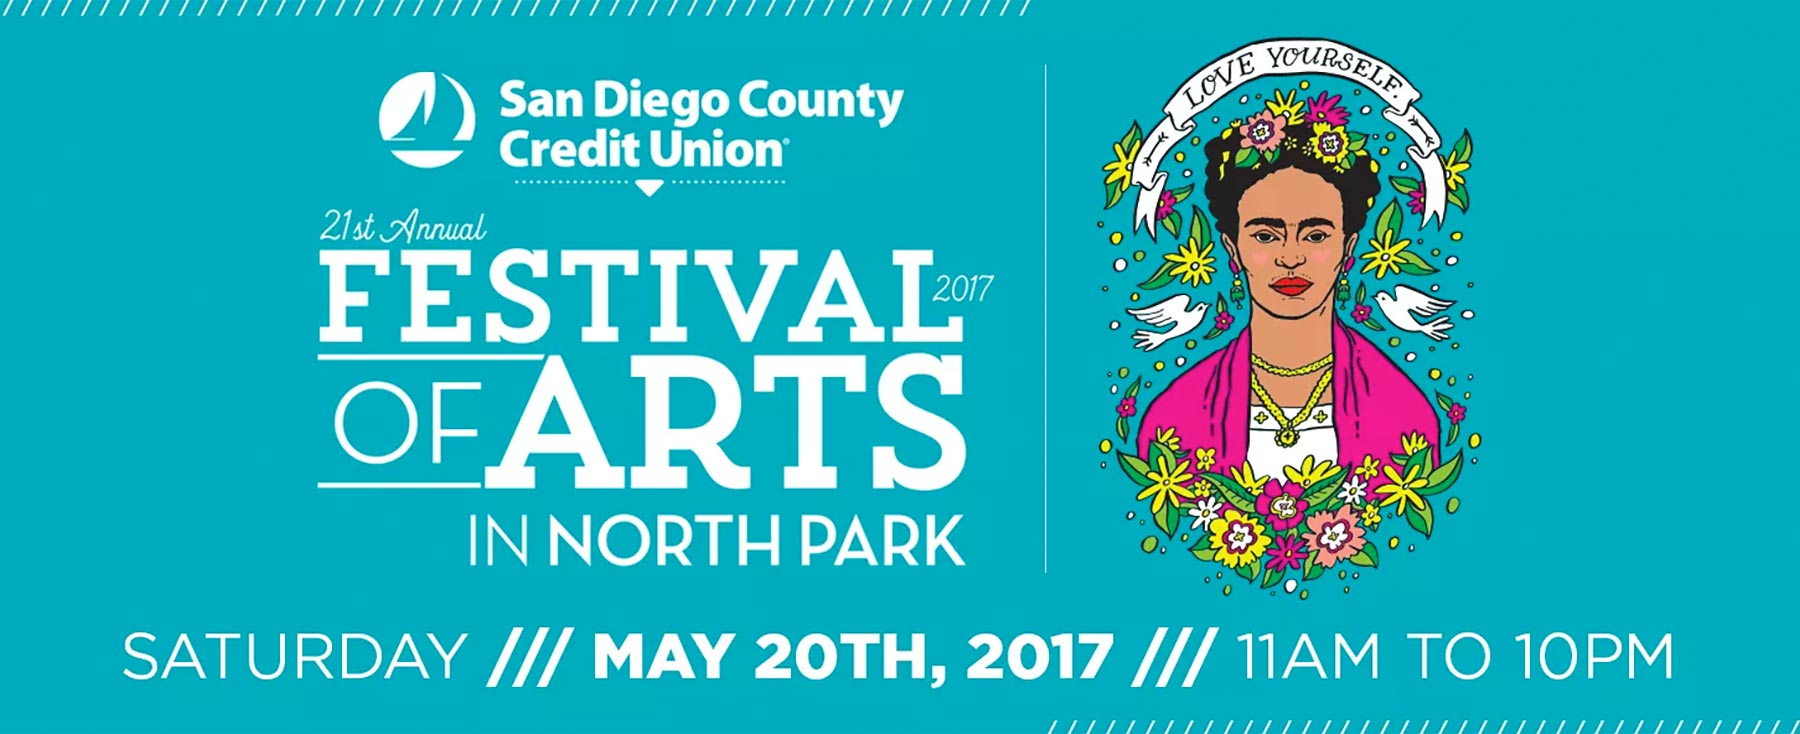 Festival of Arts in North Park